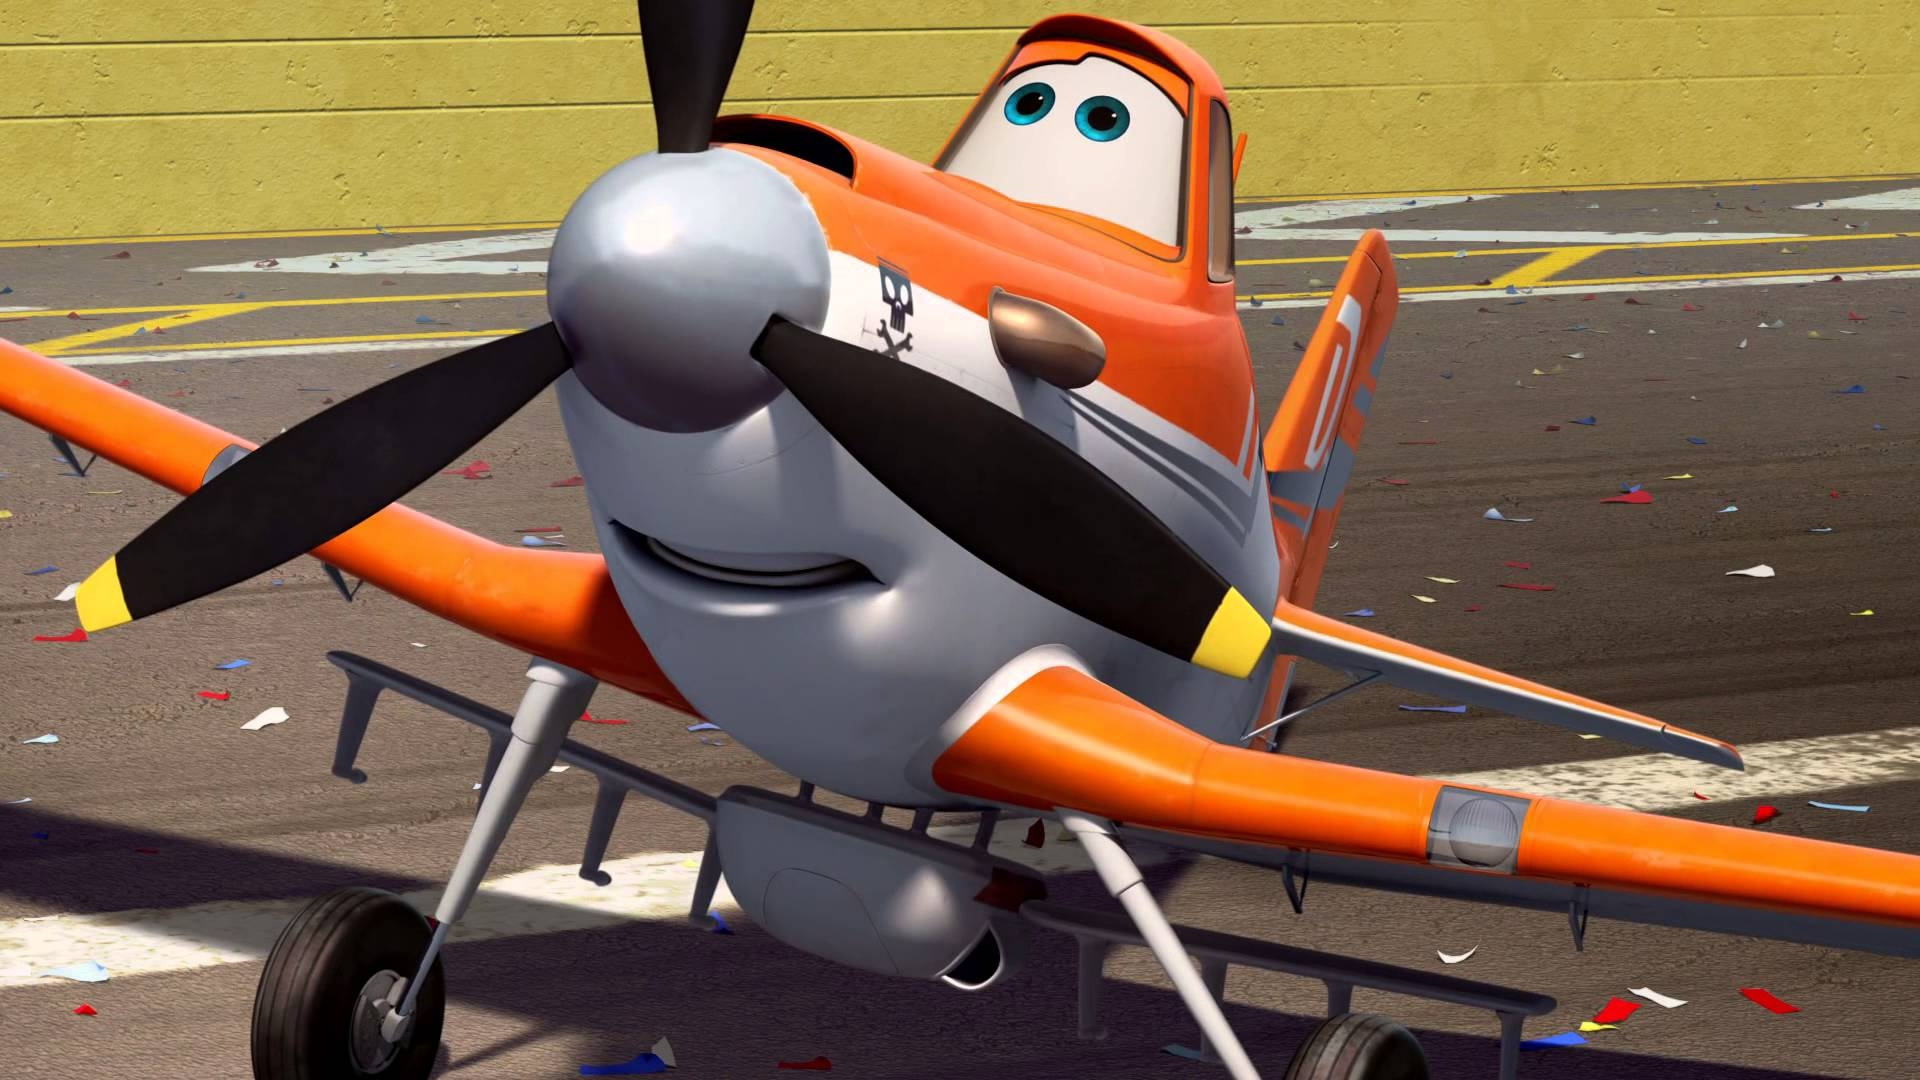 disney pixar planes free wallpaper